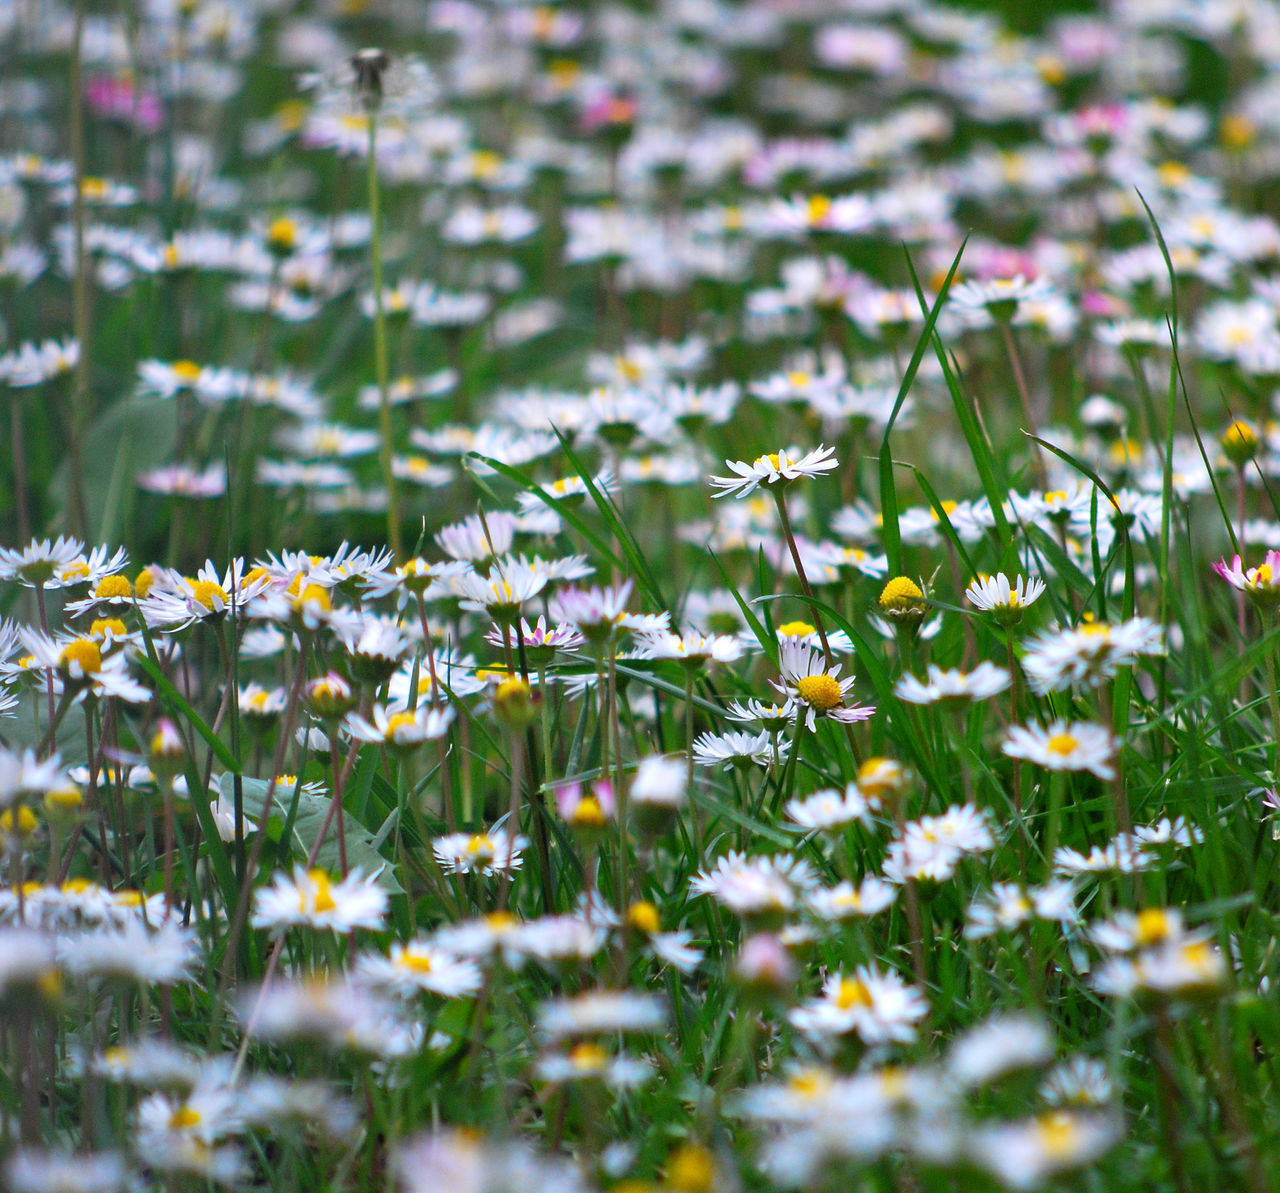 flower, nature, growth, delicate, selective focus, field, plant, summer, grass, fragility, beauty in nature, no people, freshness, outdoors, day